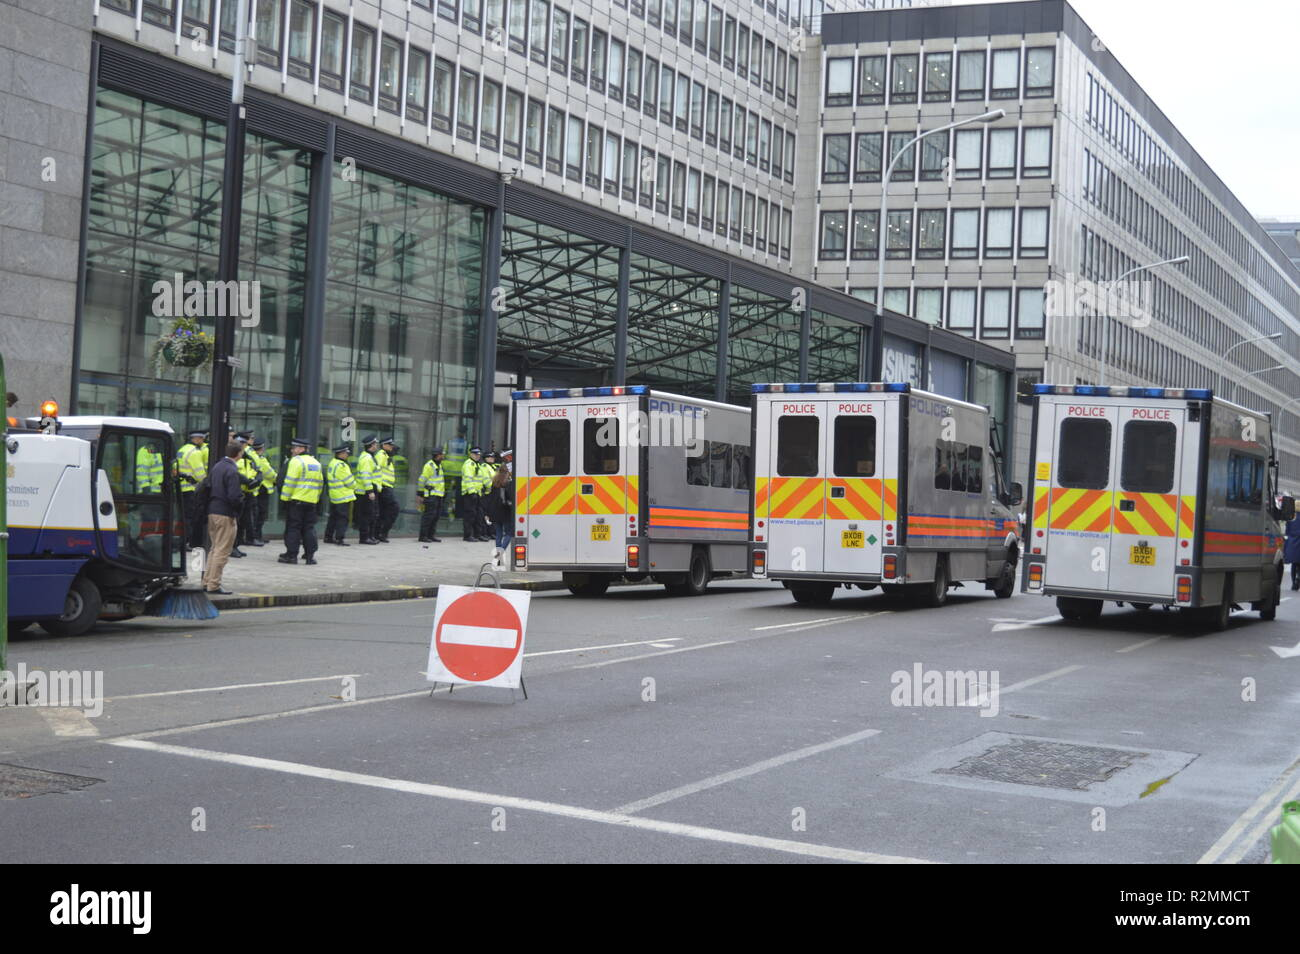 Police vehicles lined up to block the road, near Westminster, during student protest of 2015. Police teams guard the business center. London,UK. - Stock Image